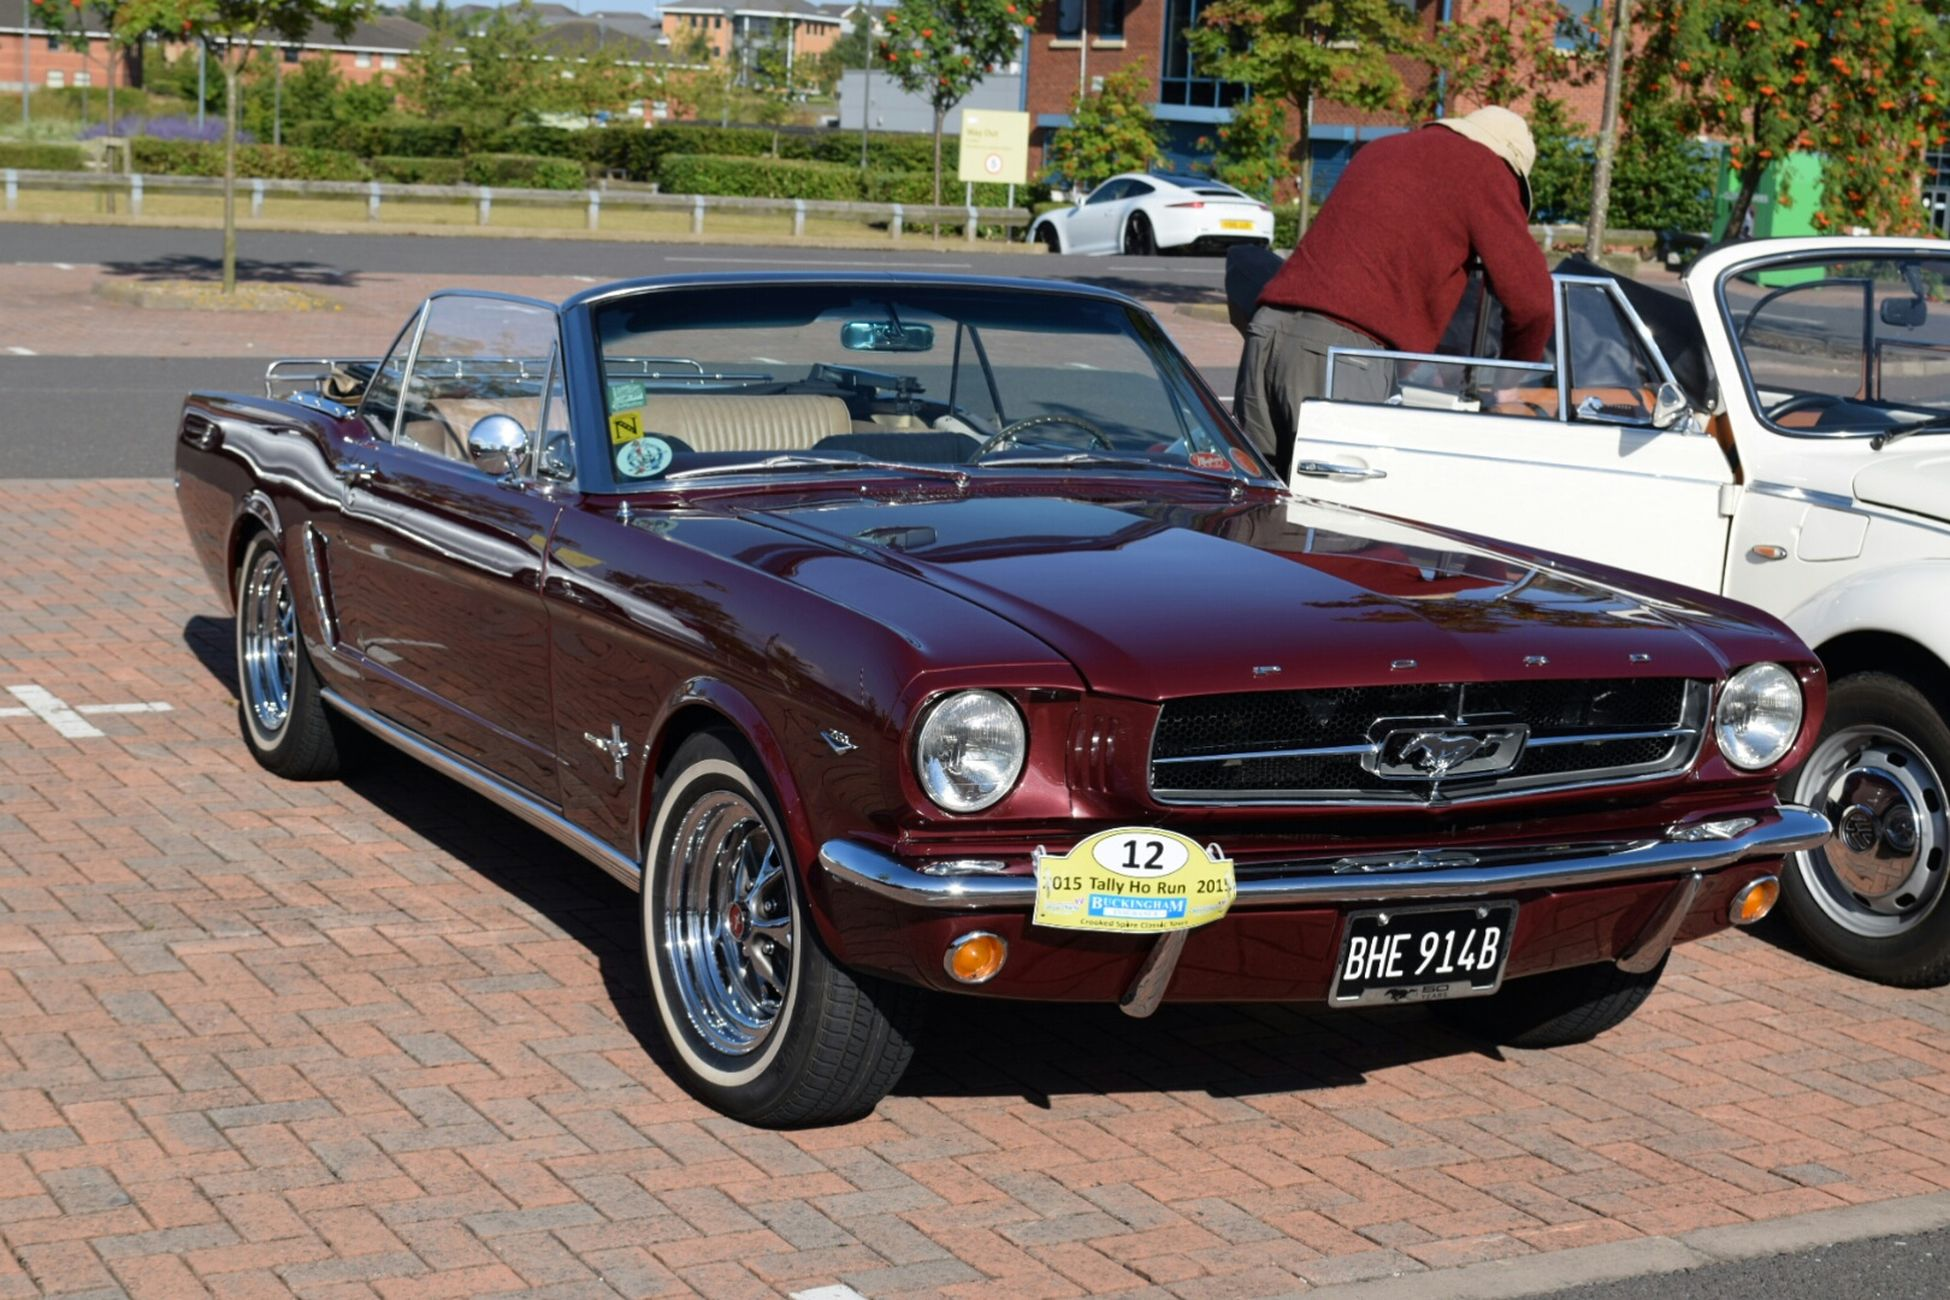 Ford Mustang. classic cars. At An Exhibition